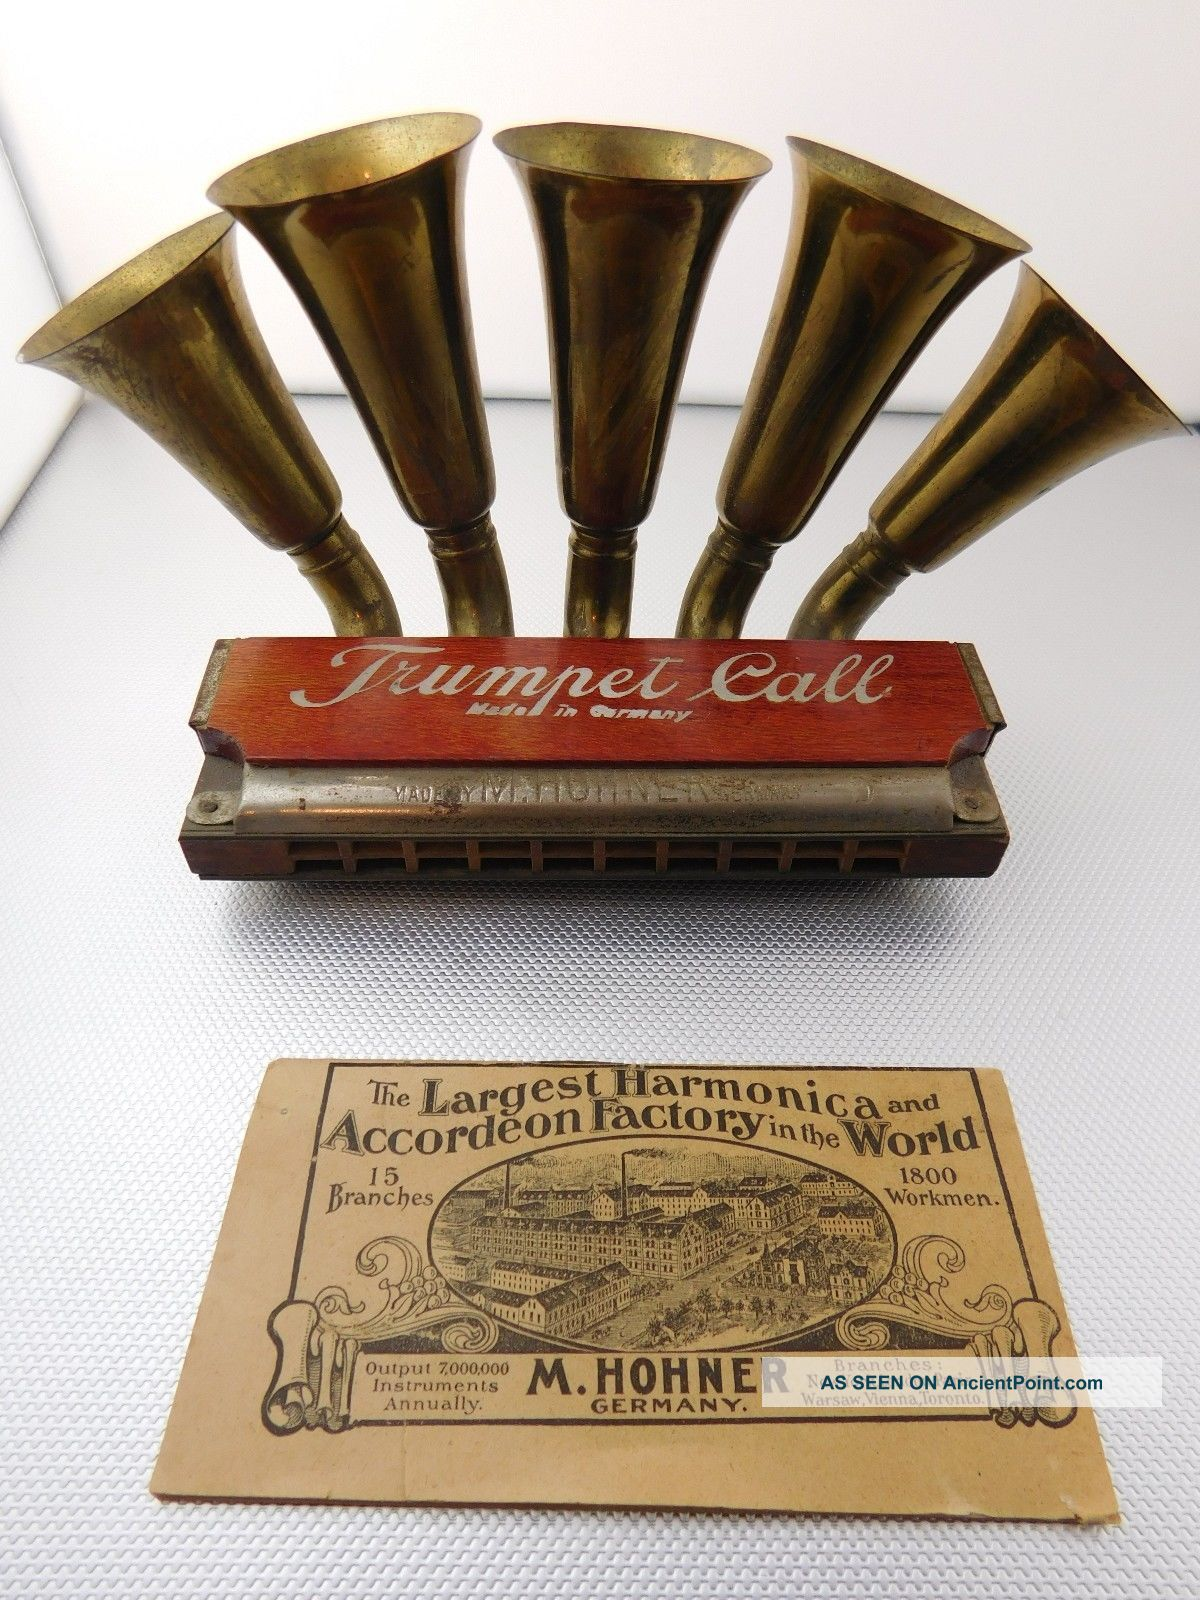 1905 1906 Hohner Trumpet Call Harmonica Box Instruction & Advert Insert Wind photo